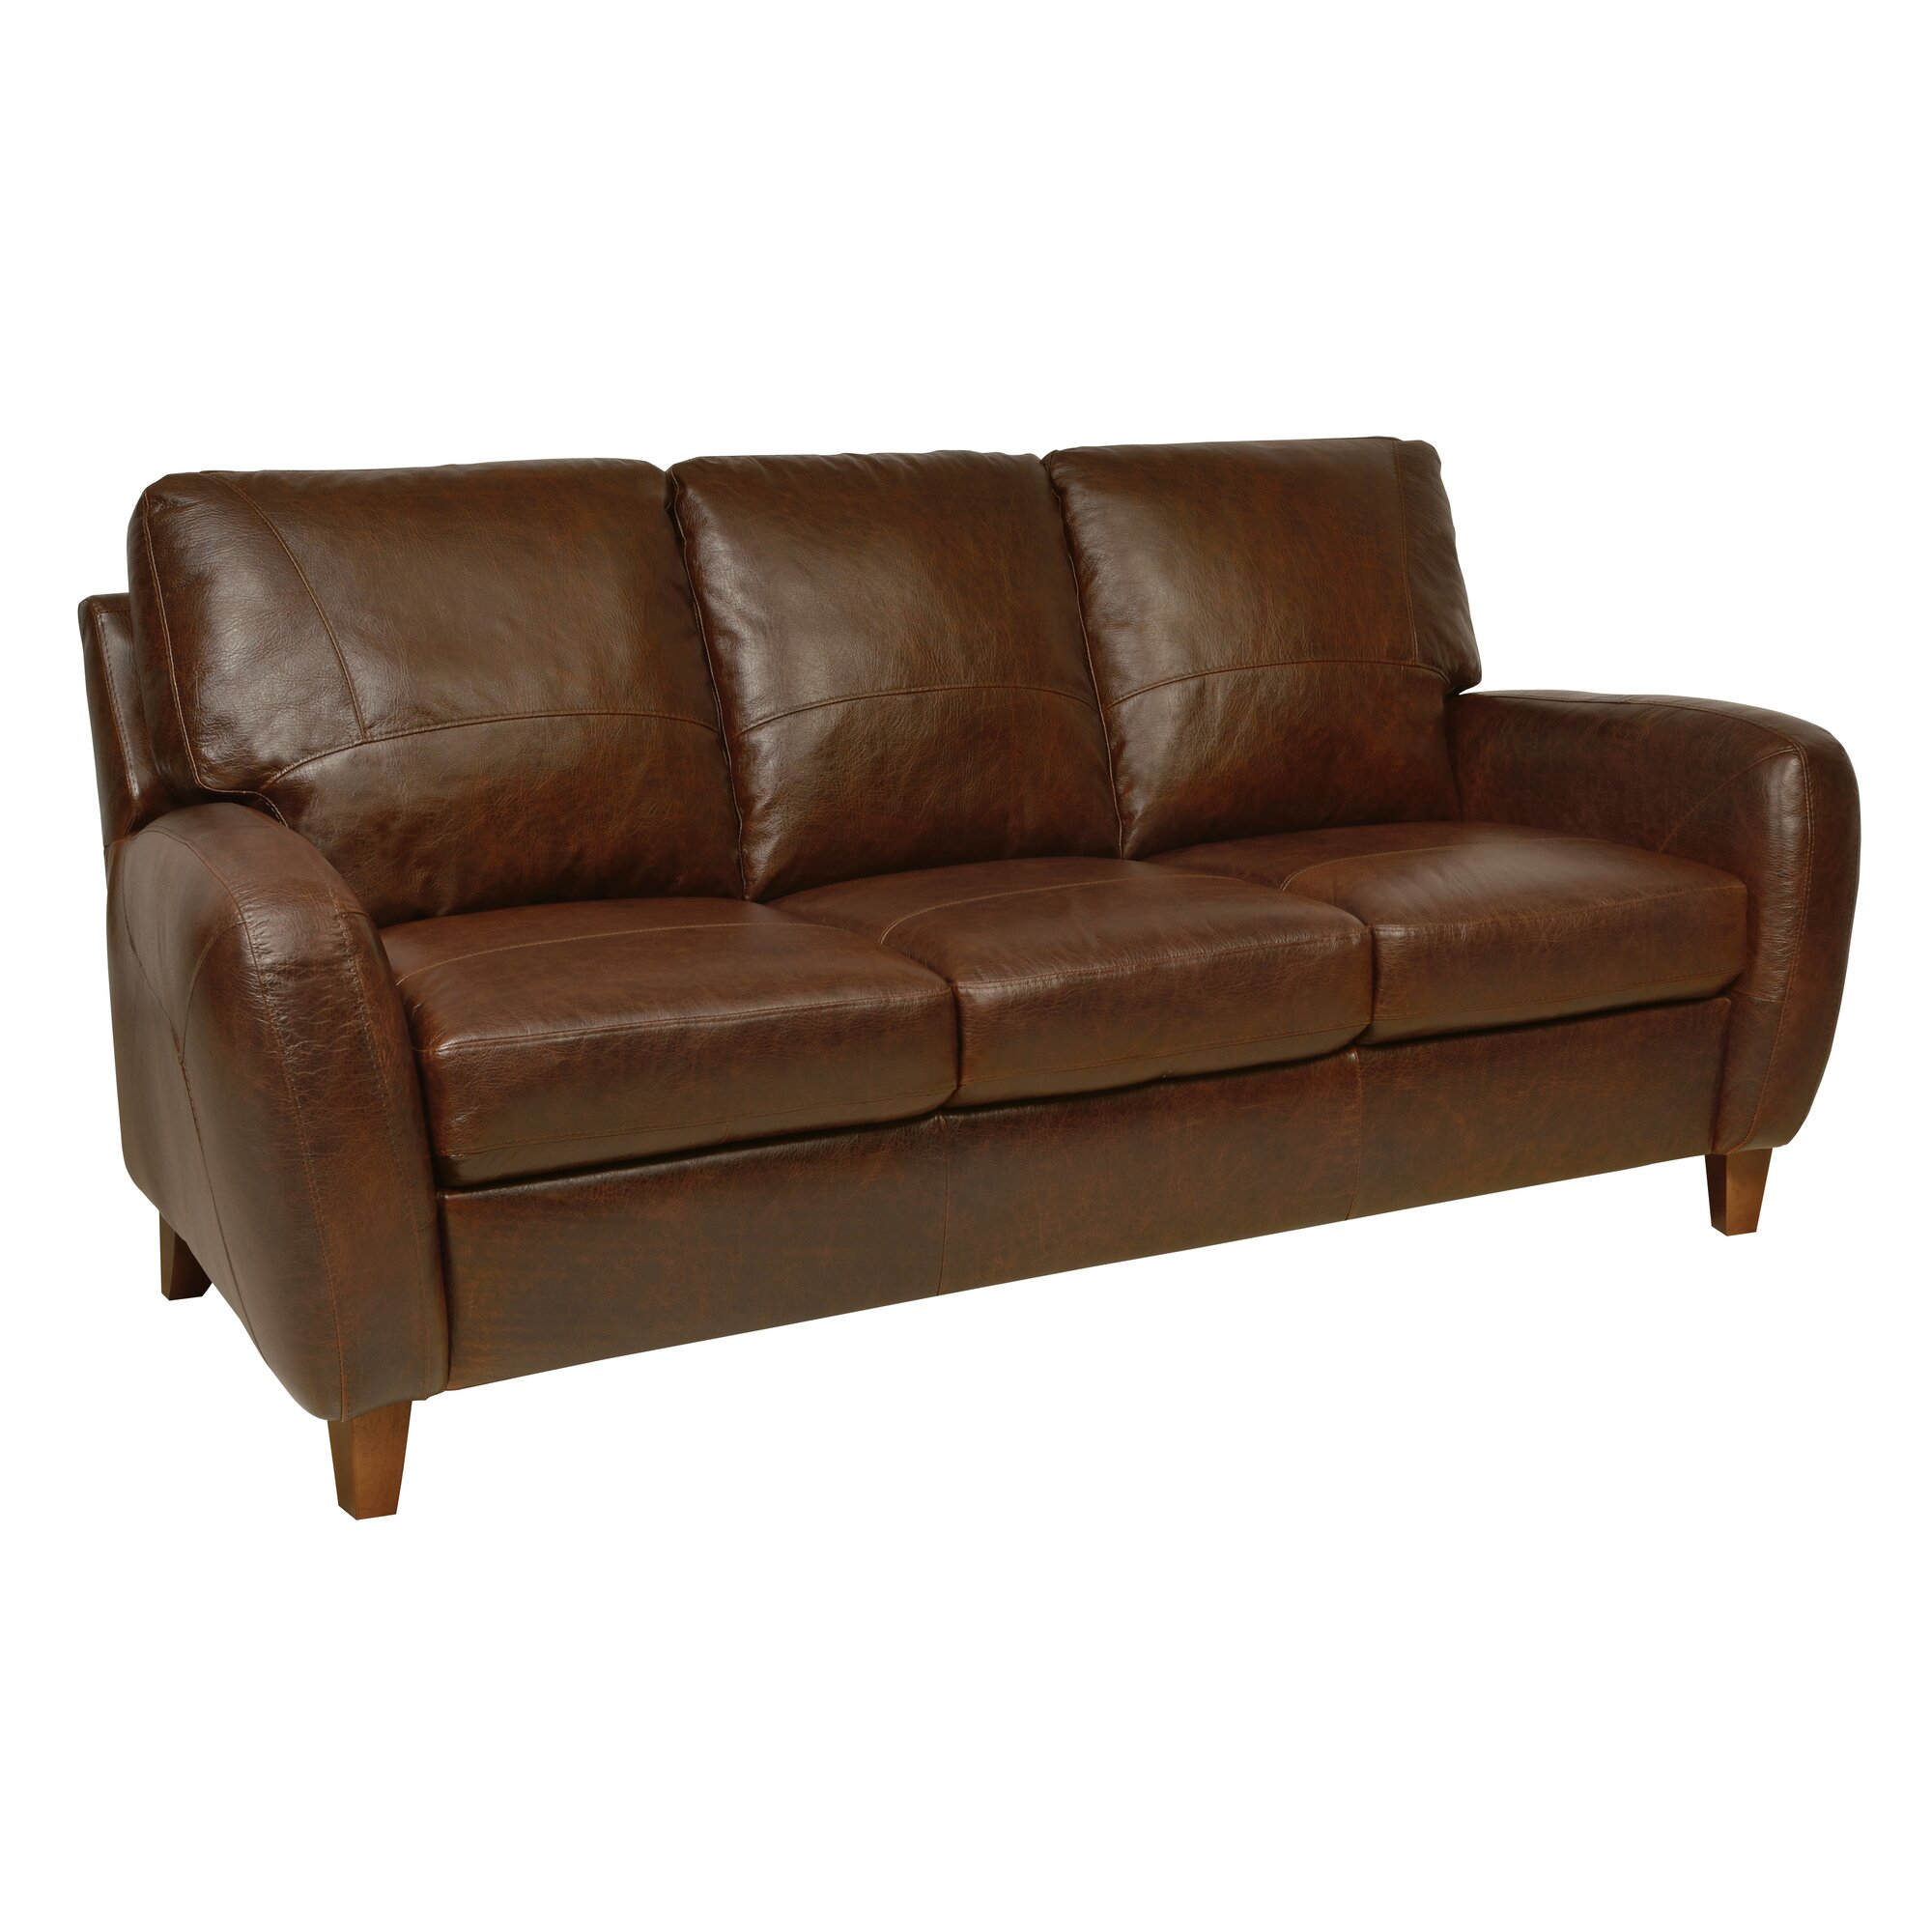 Leather Sofa Manufacturer Ratings